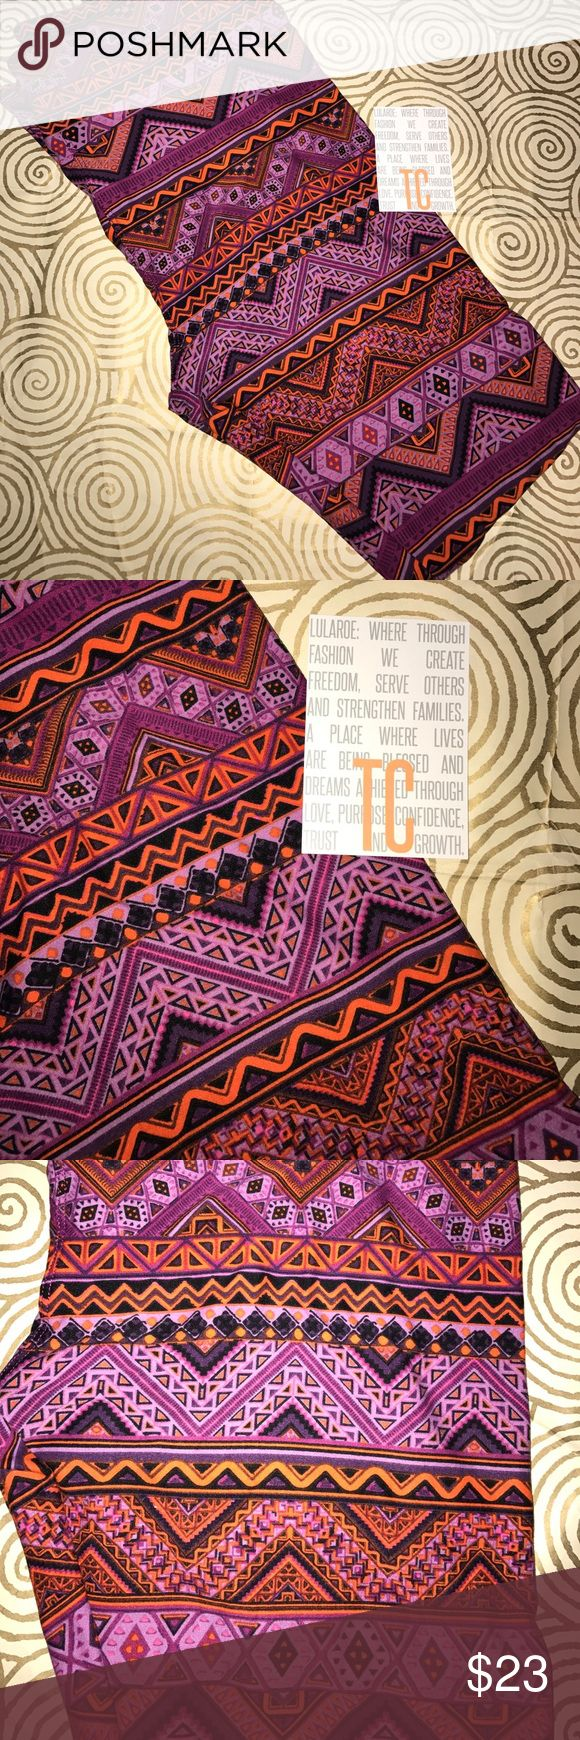 BNWT lularoe leggings TC pink purple orange Aztec BNWT lularoe leggings TC pink purple orange Aztec horizontal pattern . Some black. Fits 12-22/24, Choose size 1X below, but know these are TC (tall and curvy) and fit sizes 12-22/24. Ask with questions! LuLaRoe Pants Leggings